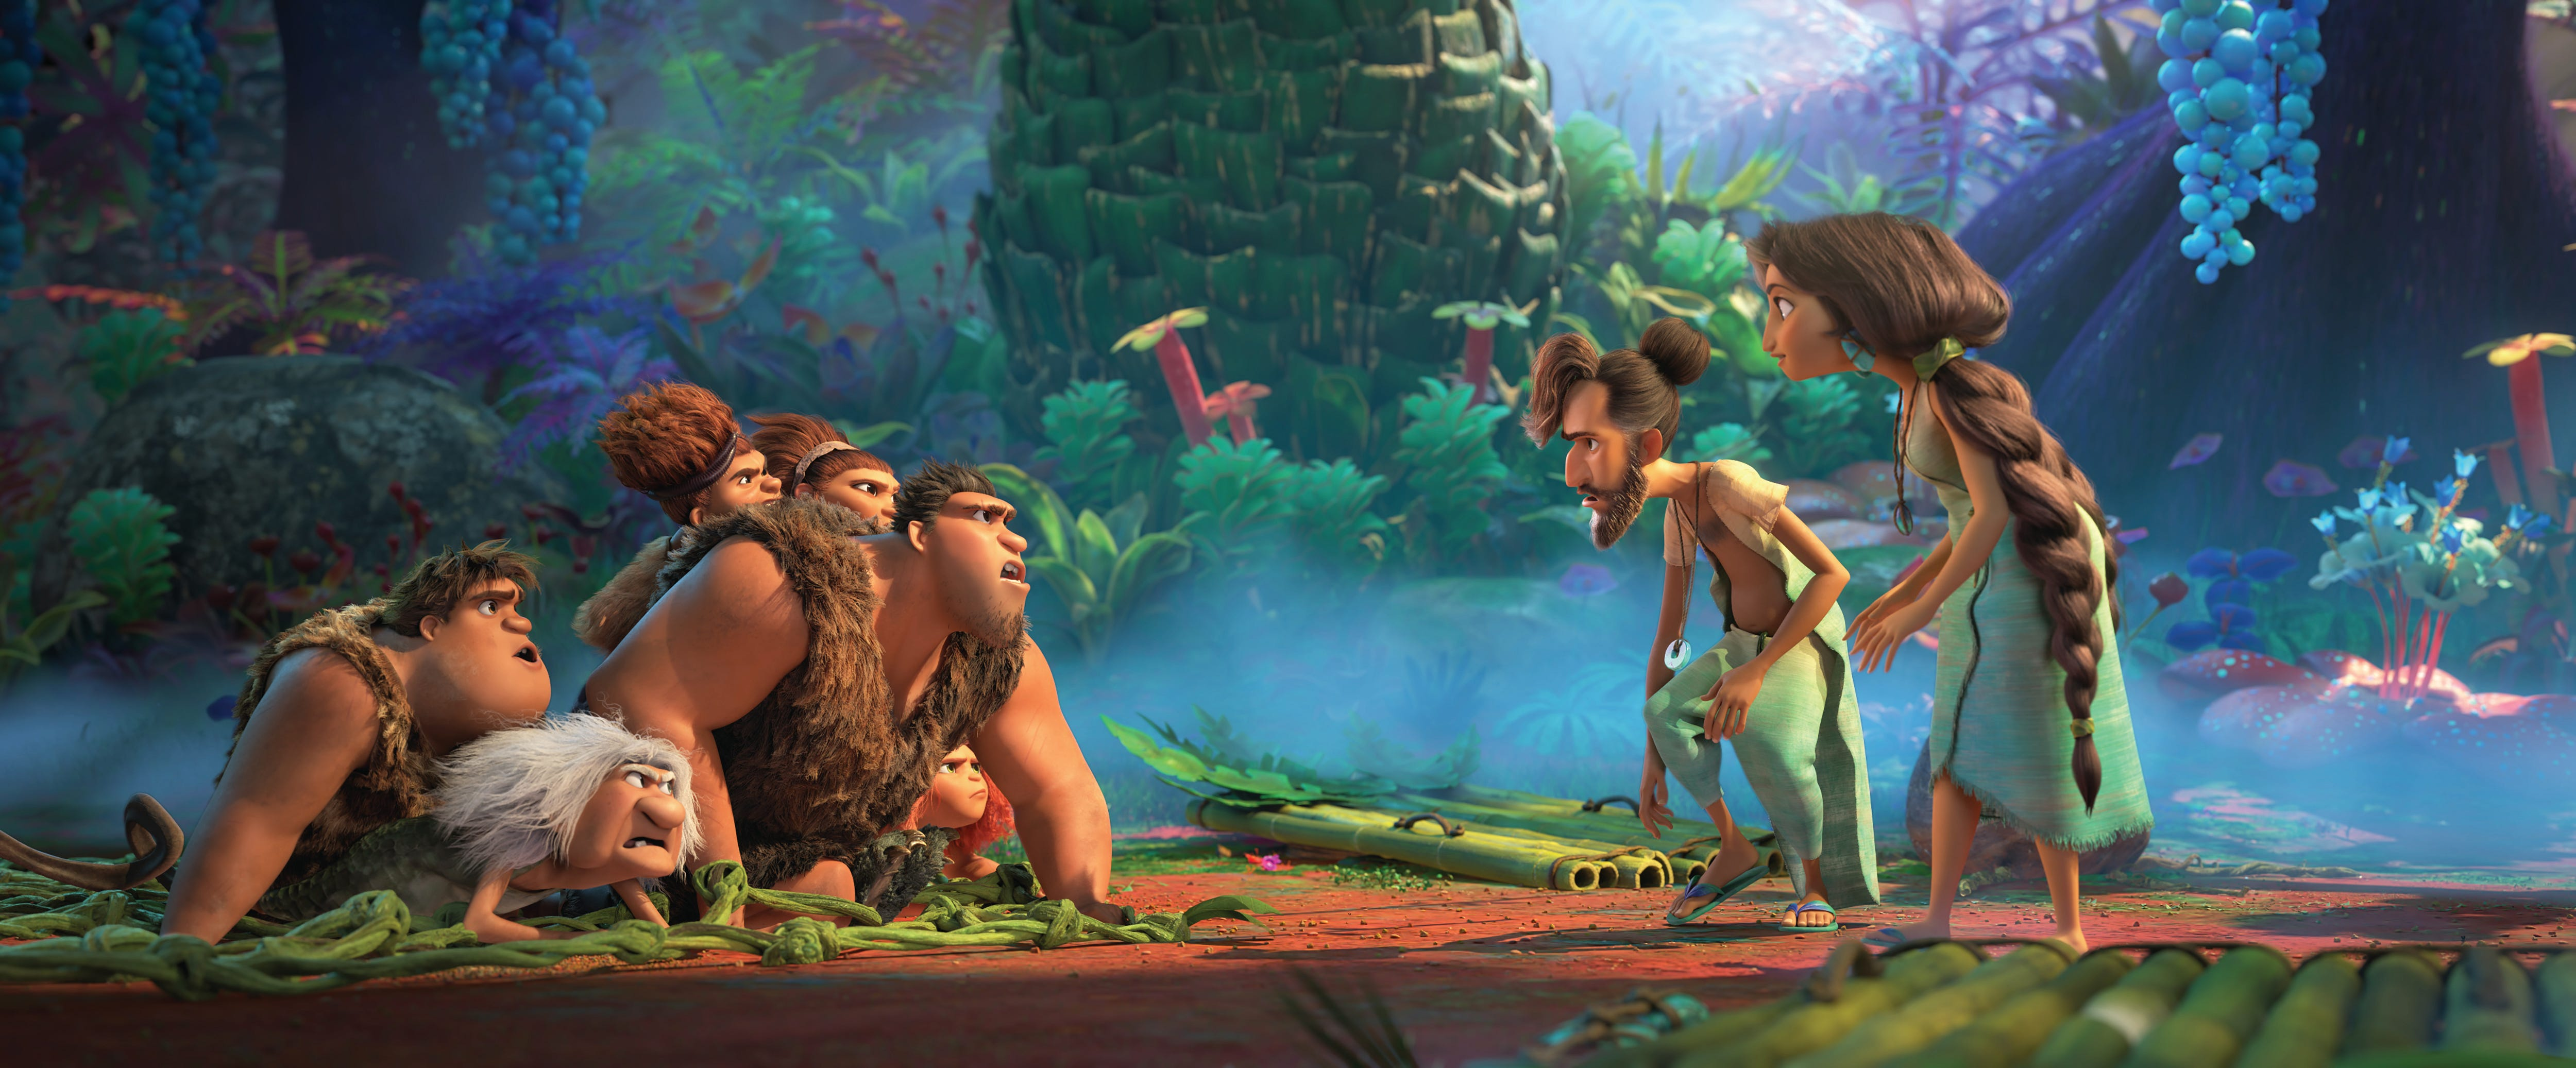 At the movies in Milwaukee:  The Croods  sequel joins Oscar contenders  Mank  and  Sound of Metal